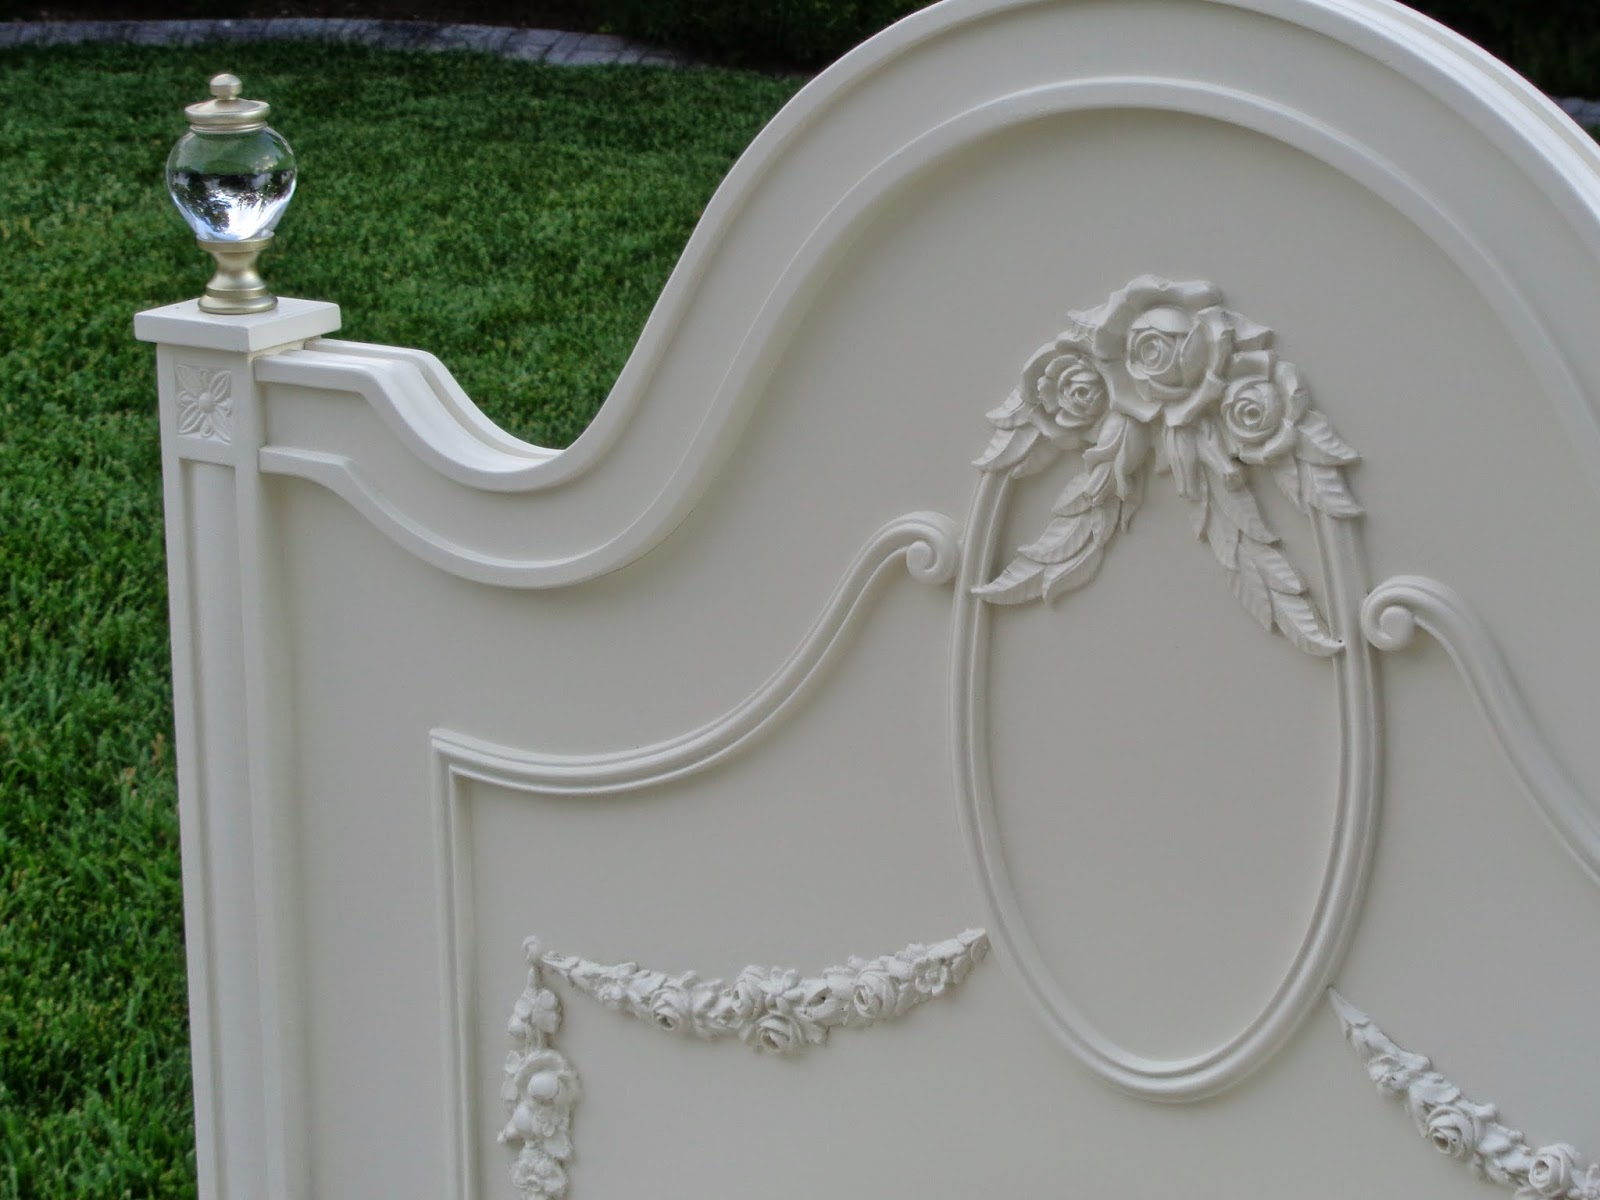 French Garden Treasures French Garden Treasures White Twin Bed with Glass Finials 575 SOLD